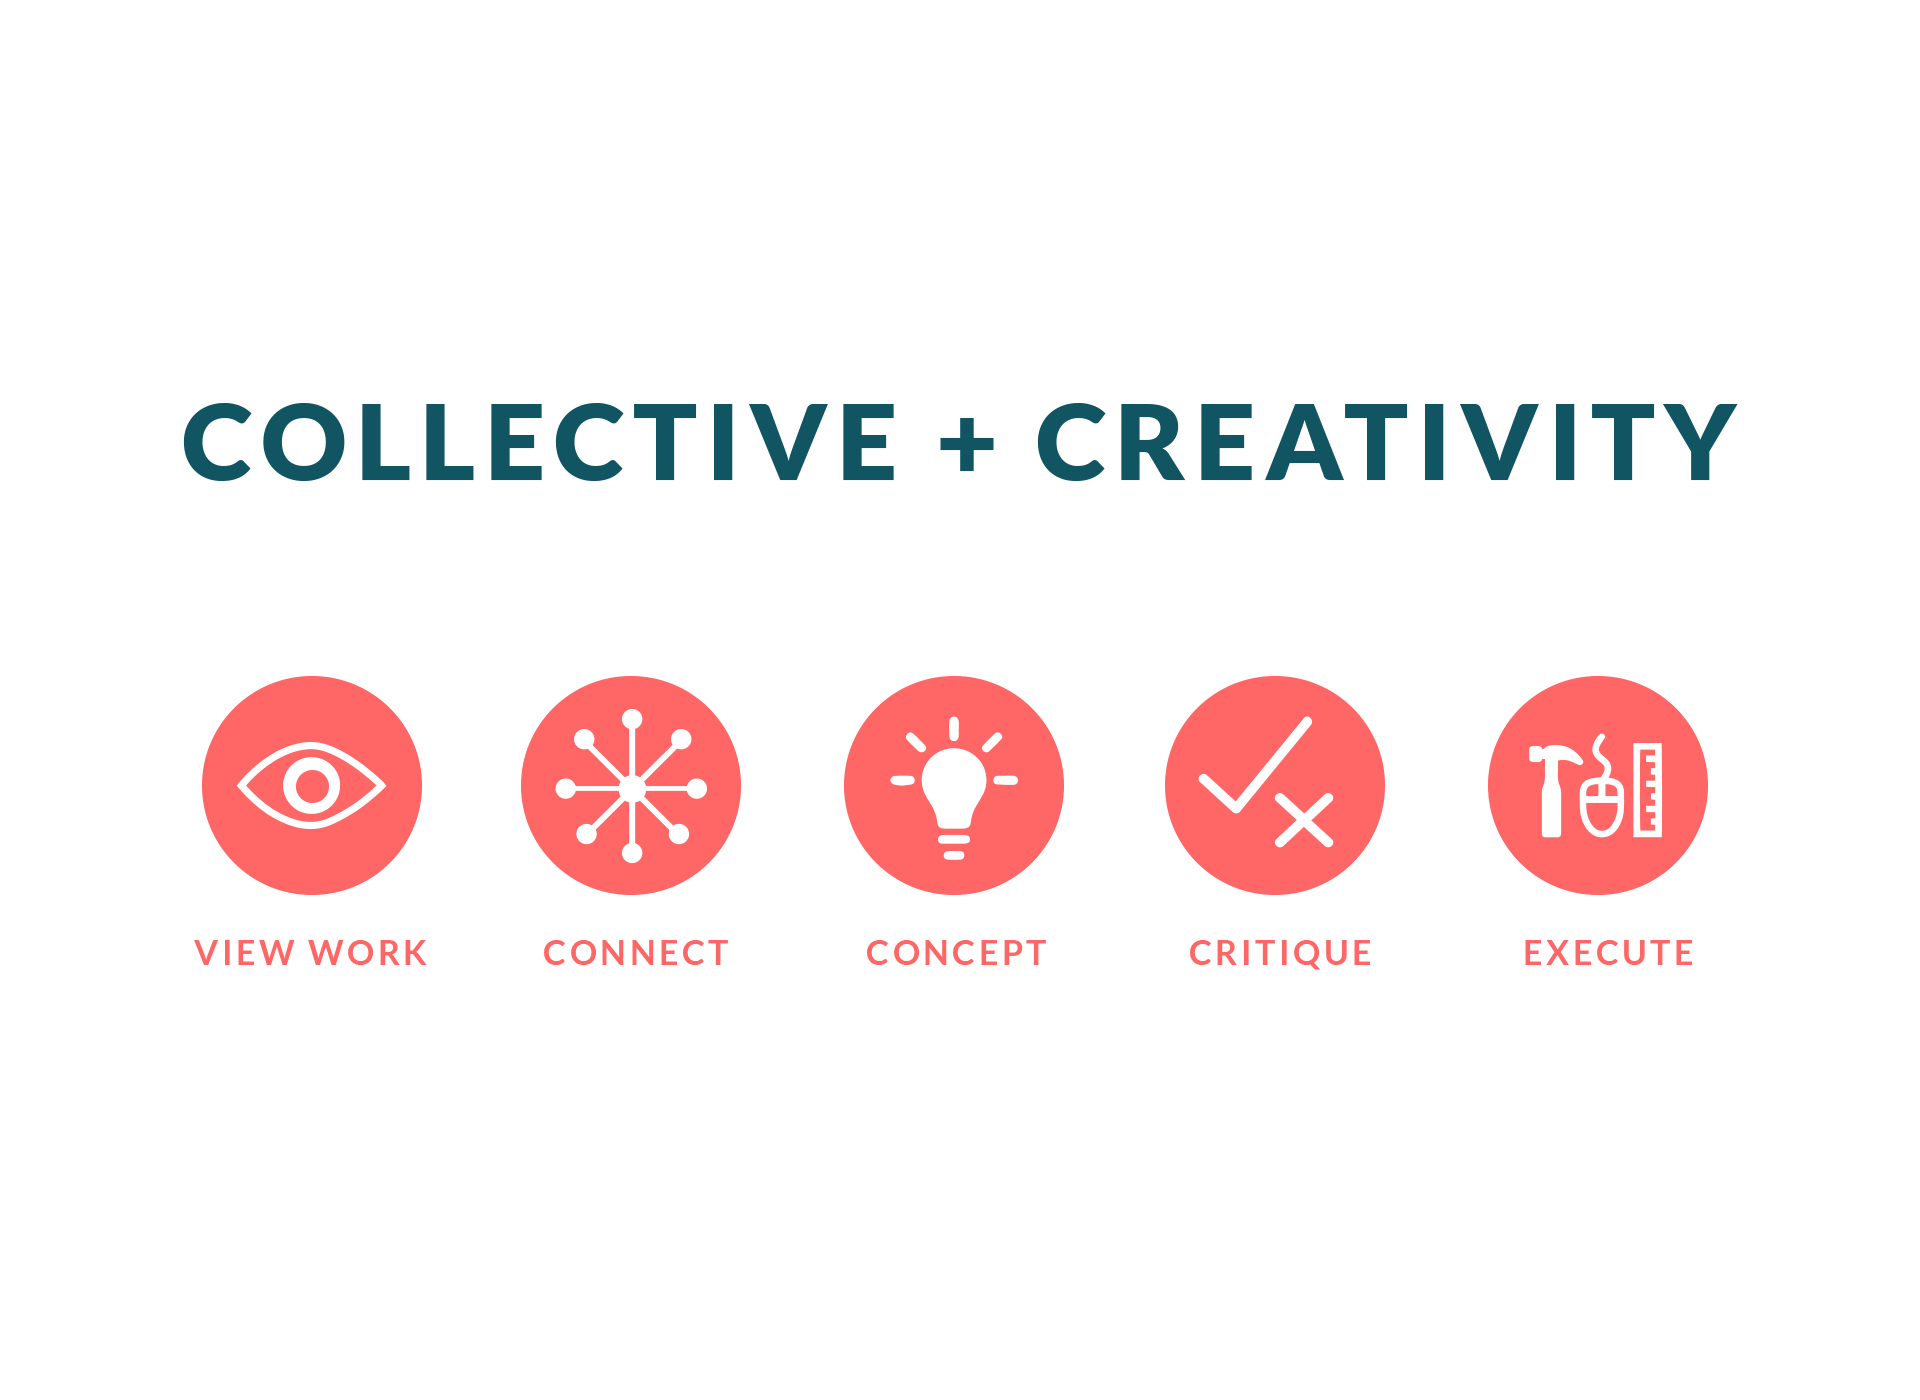 Collectivity, Research & Inspiration, Journey Mapping, Sketching & Wireframing, final solution for Collectivity, Collectivity offers, Thoughts & Learnings